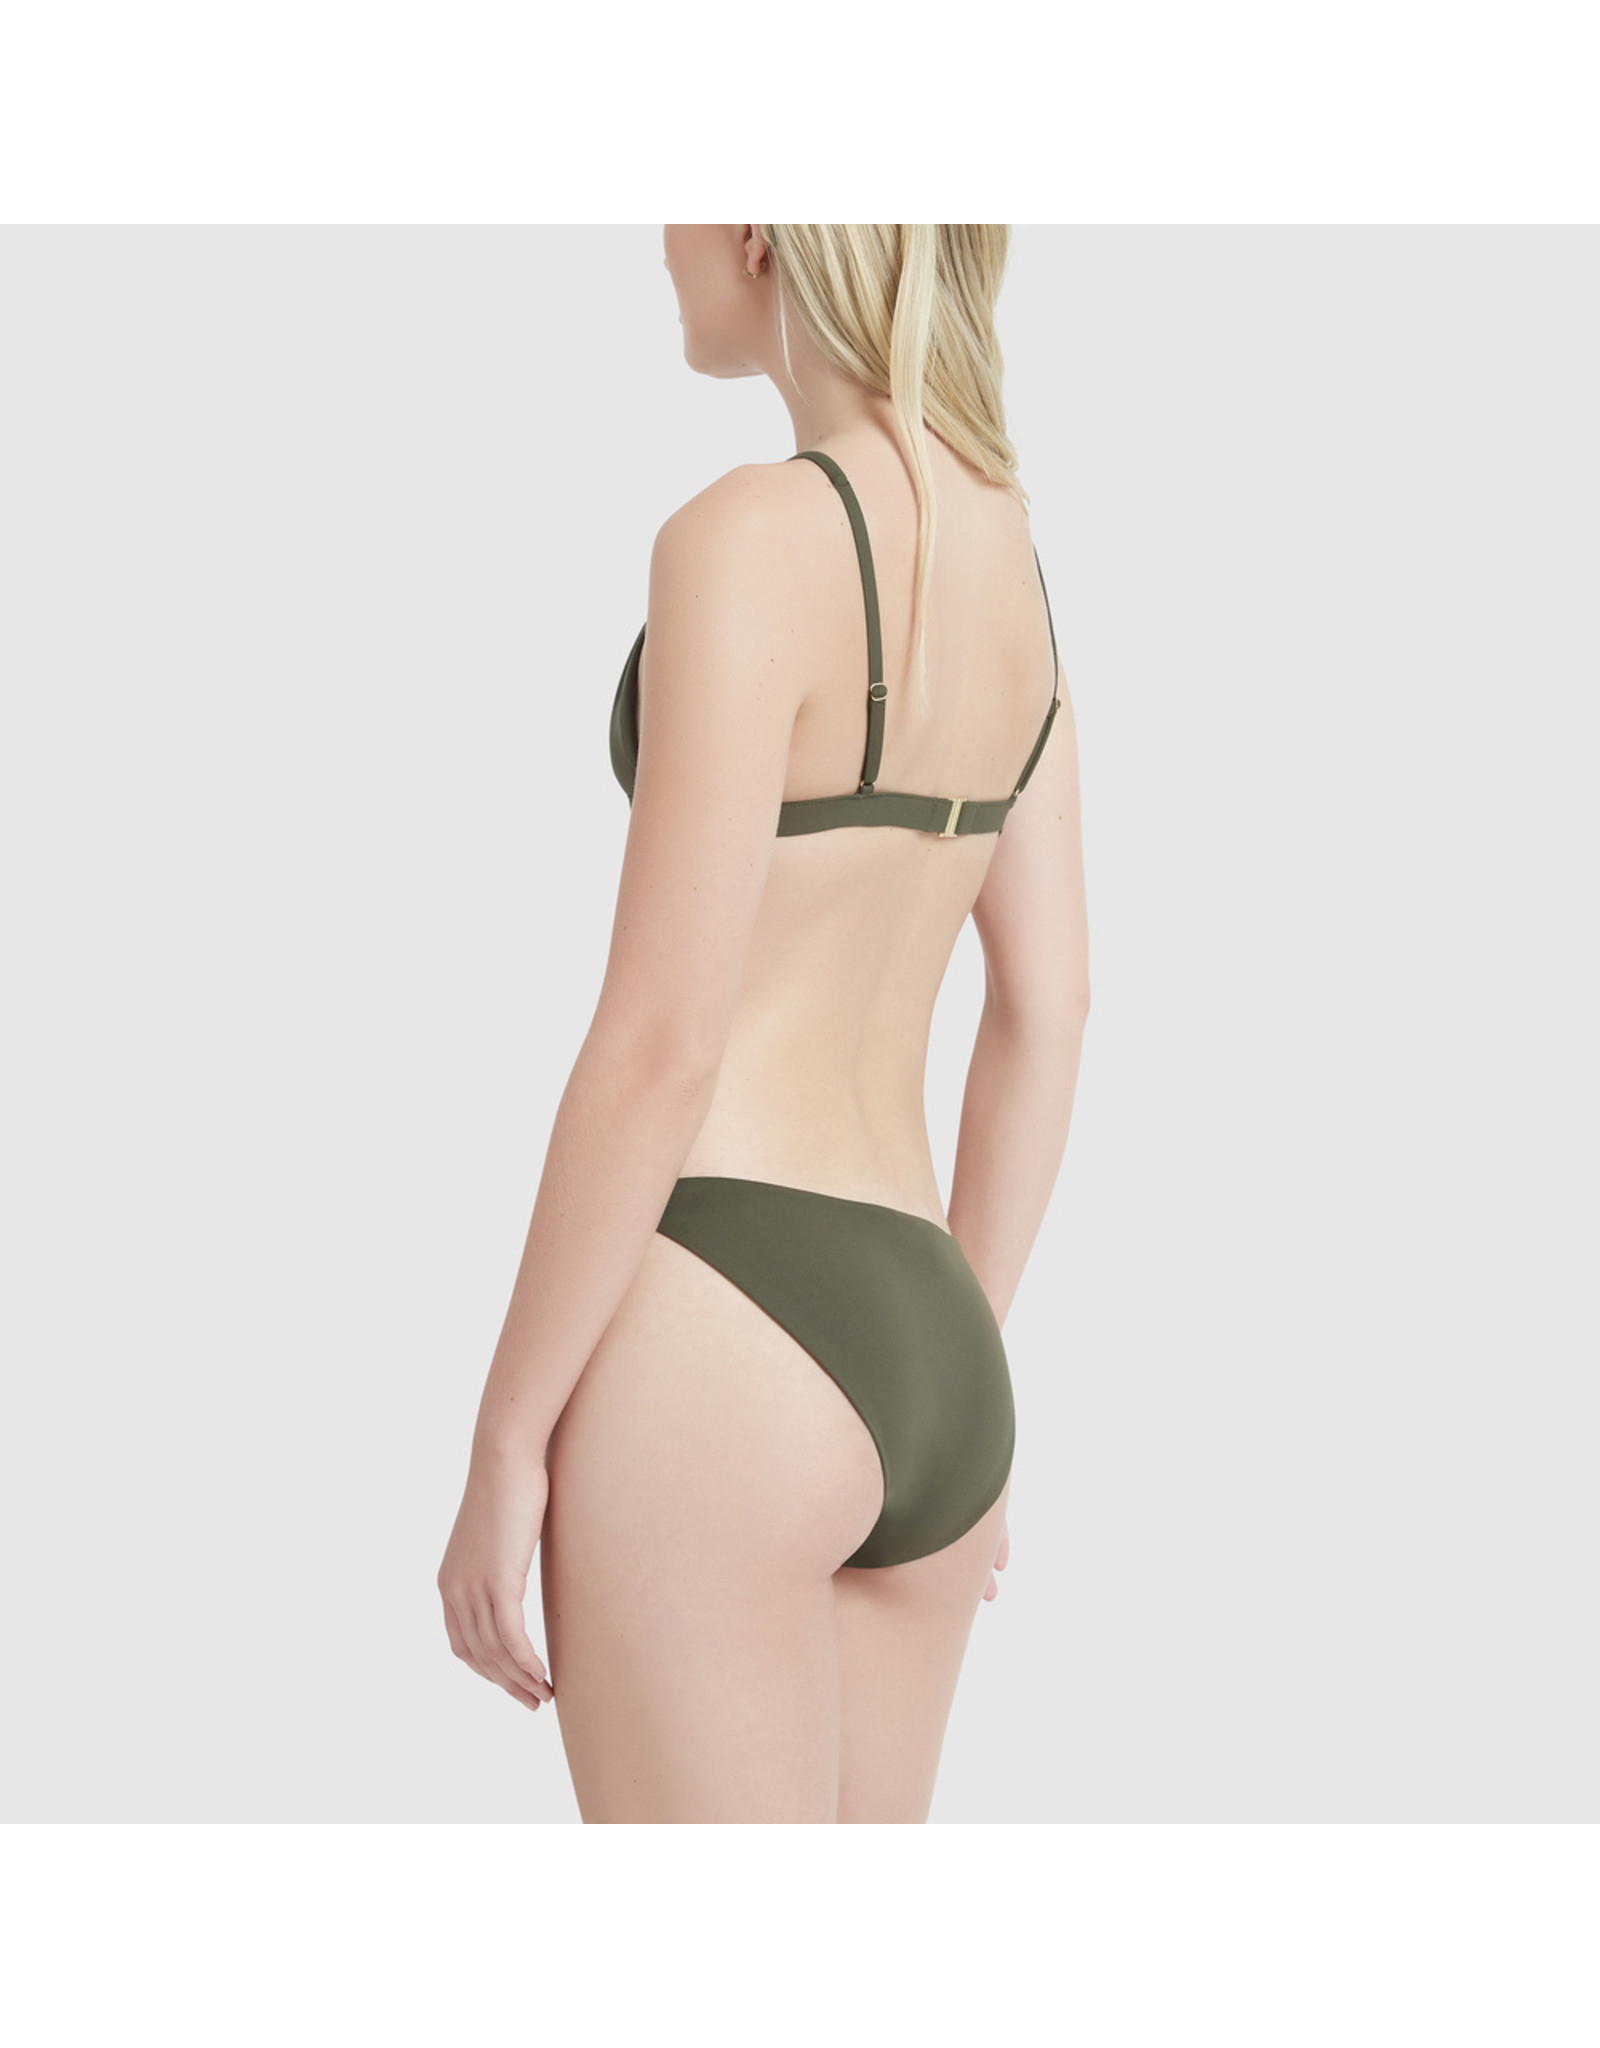 G. Label G. Label Low-Rise Bikini Briefs (Color: Olive, Size: M)